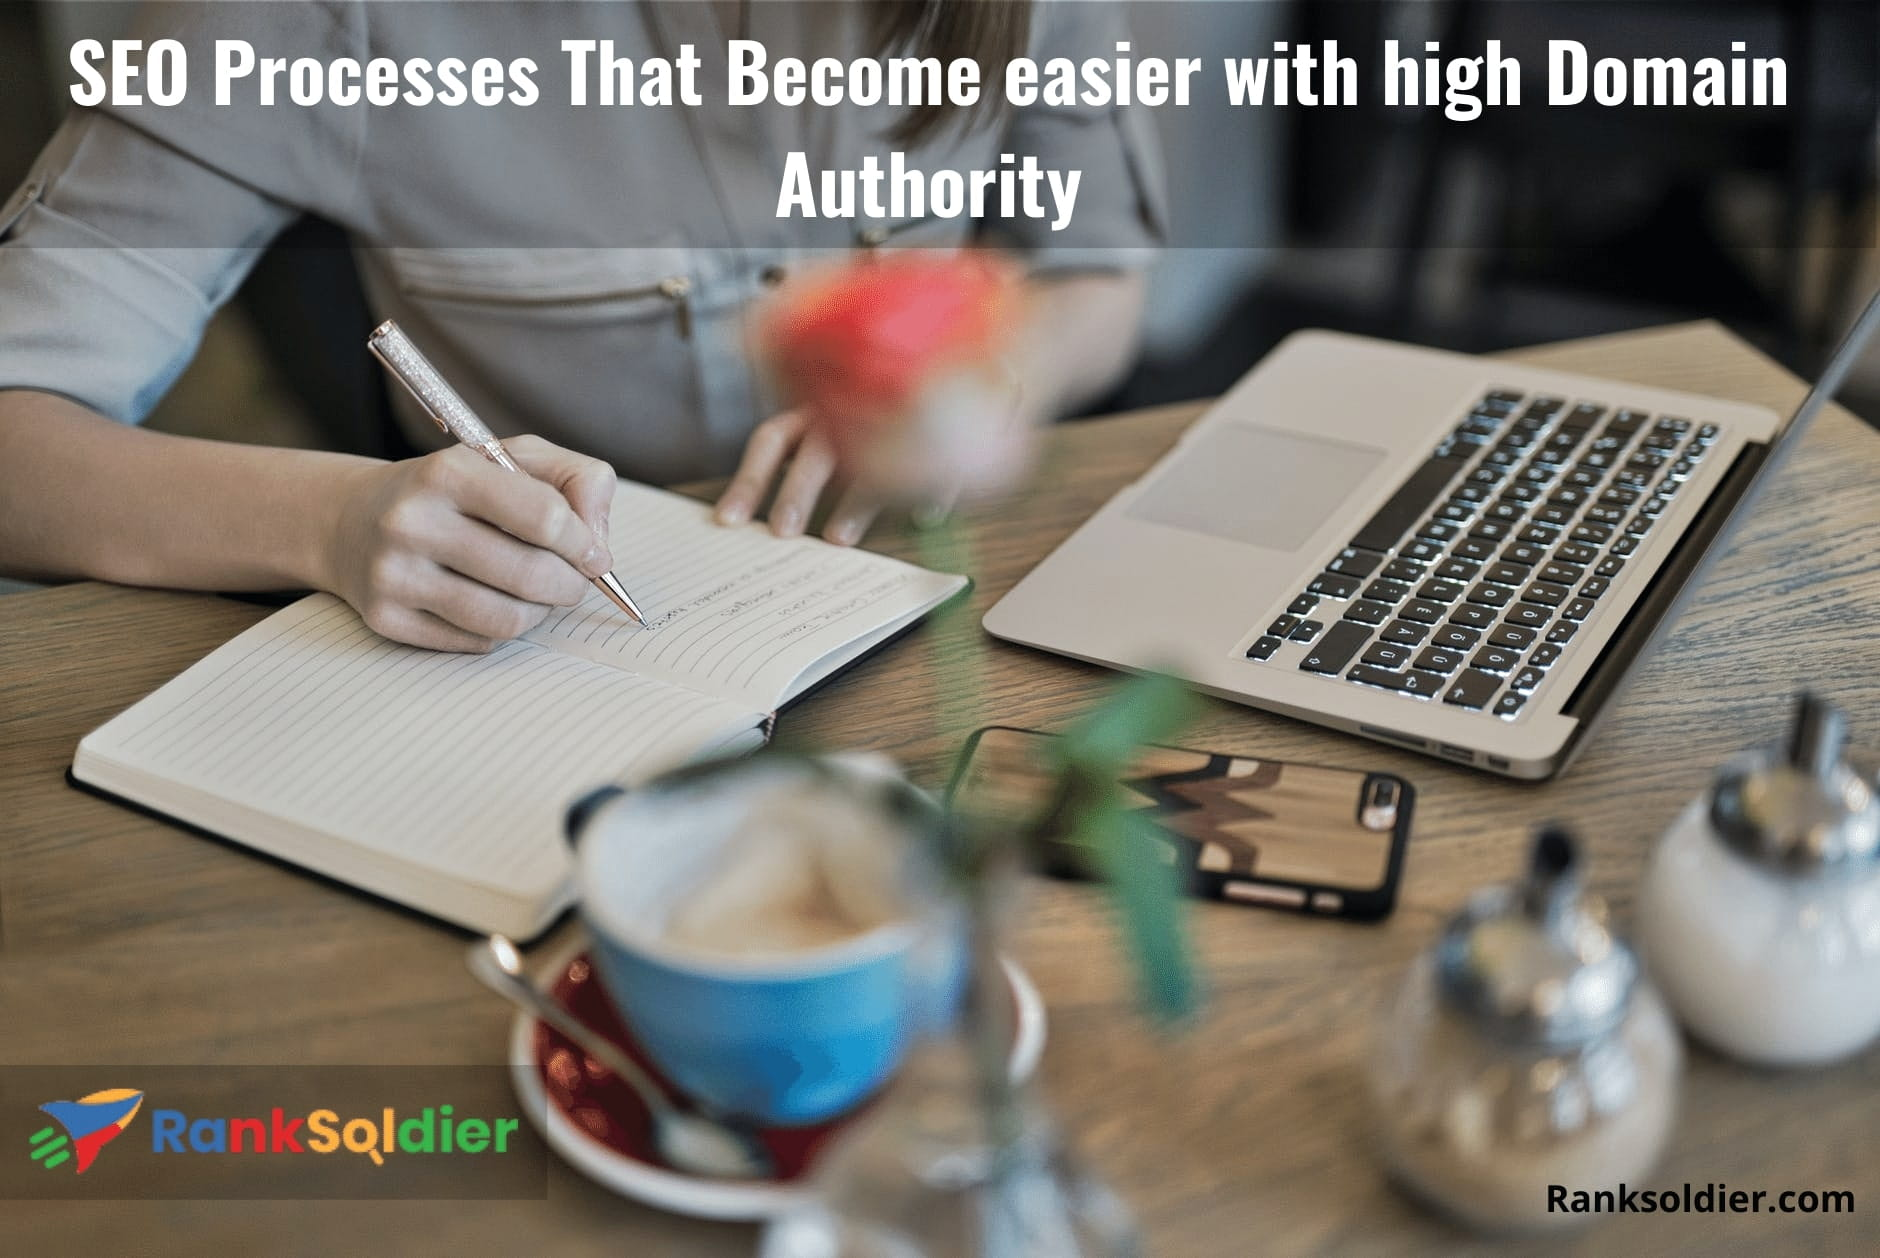 SEO Processes That Become easier with high Domain Authority